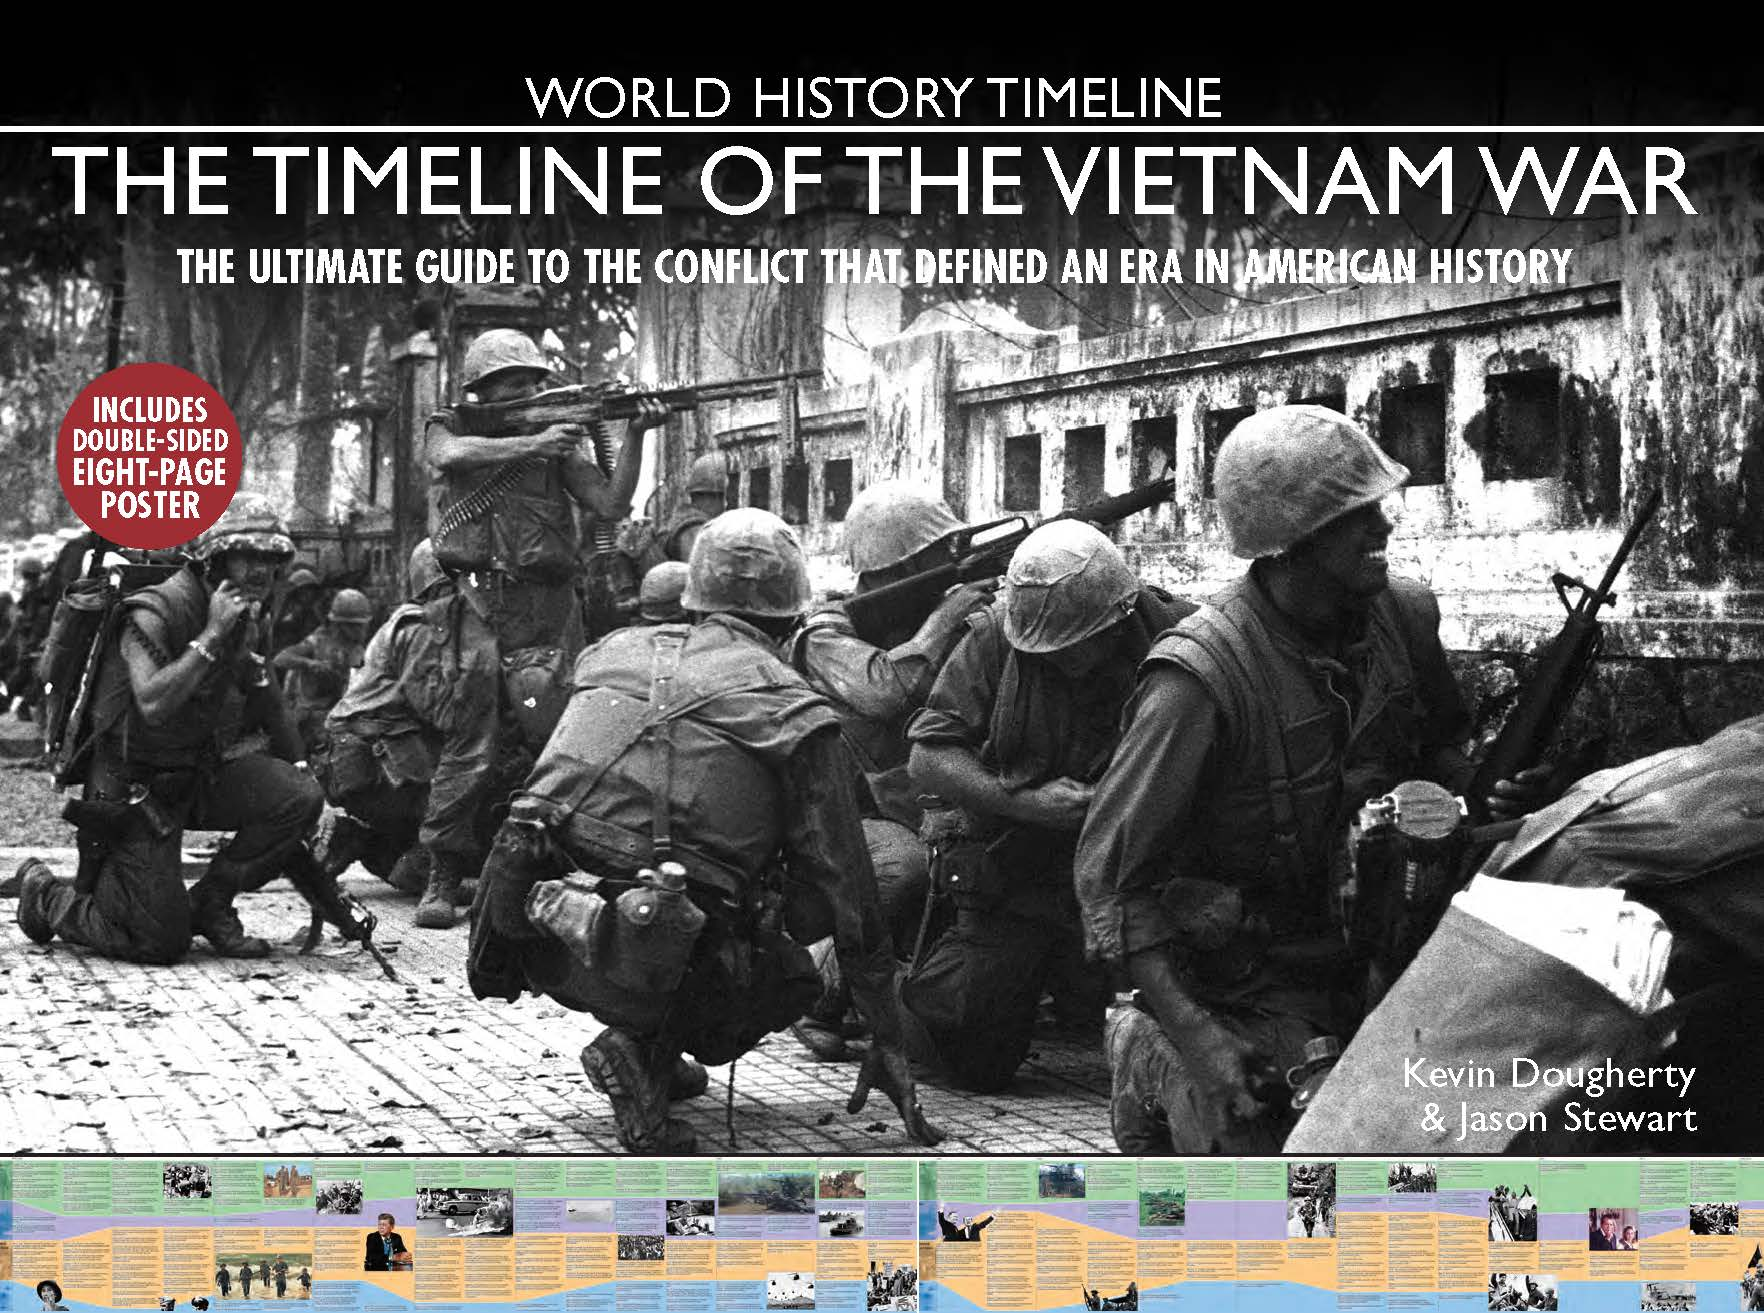 The Timeline of the Vietnam War